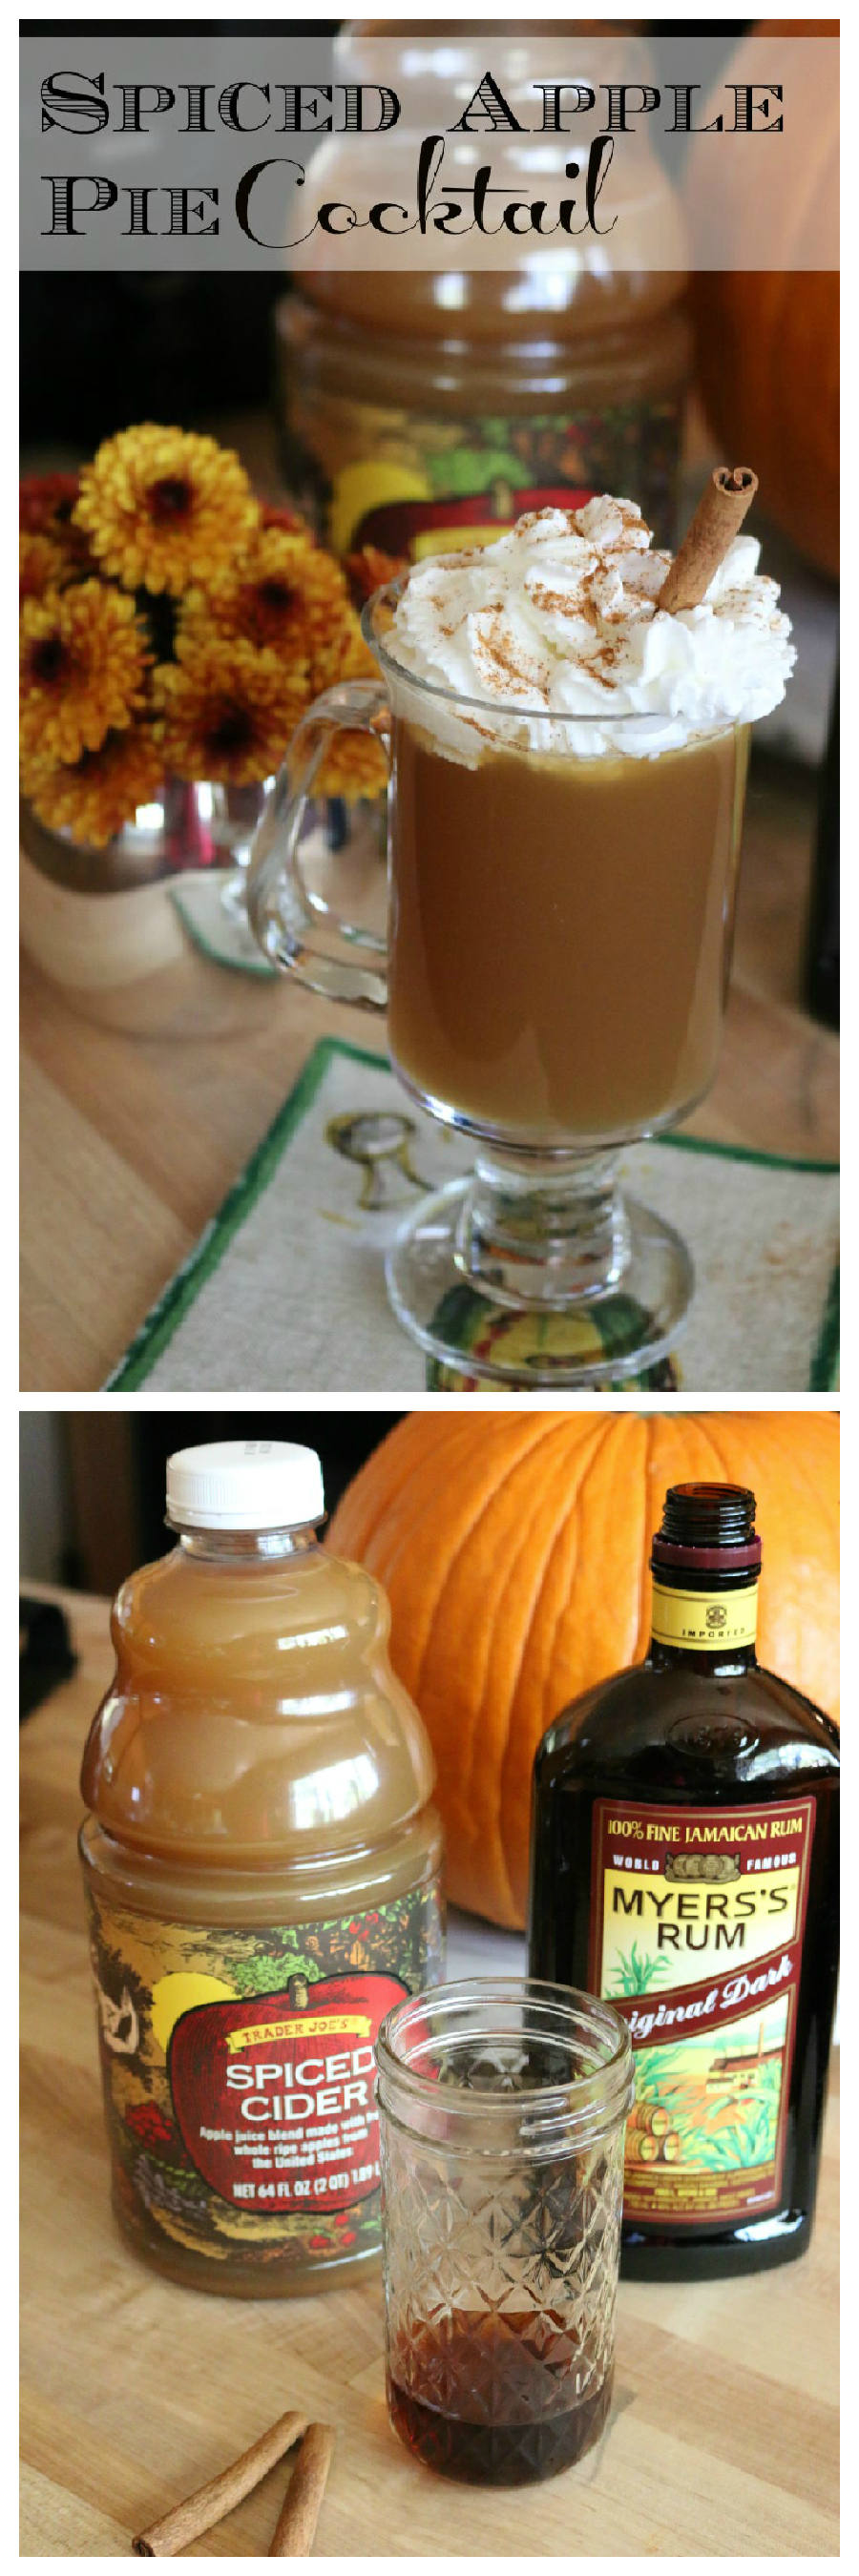 Spiced Apple Pie Cocktail Recipe perfect for a chilly evening or great addition to your Thanksgiving menu. | CeceliasGoodStuff.com | Good Food for Good People